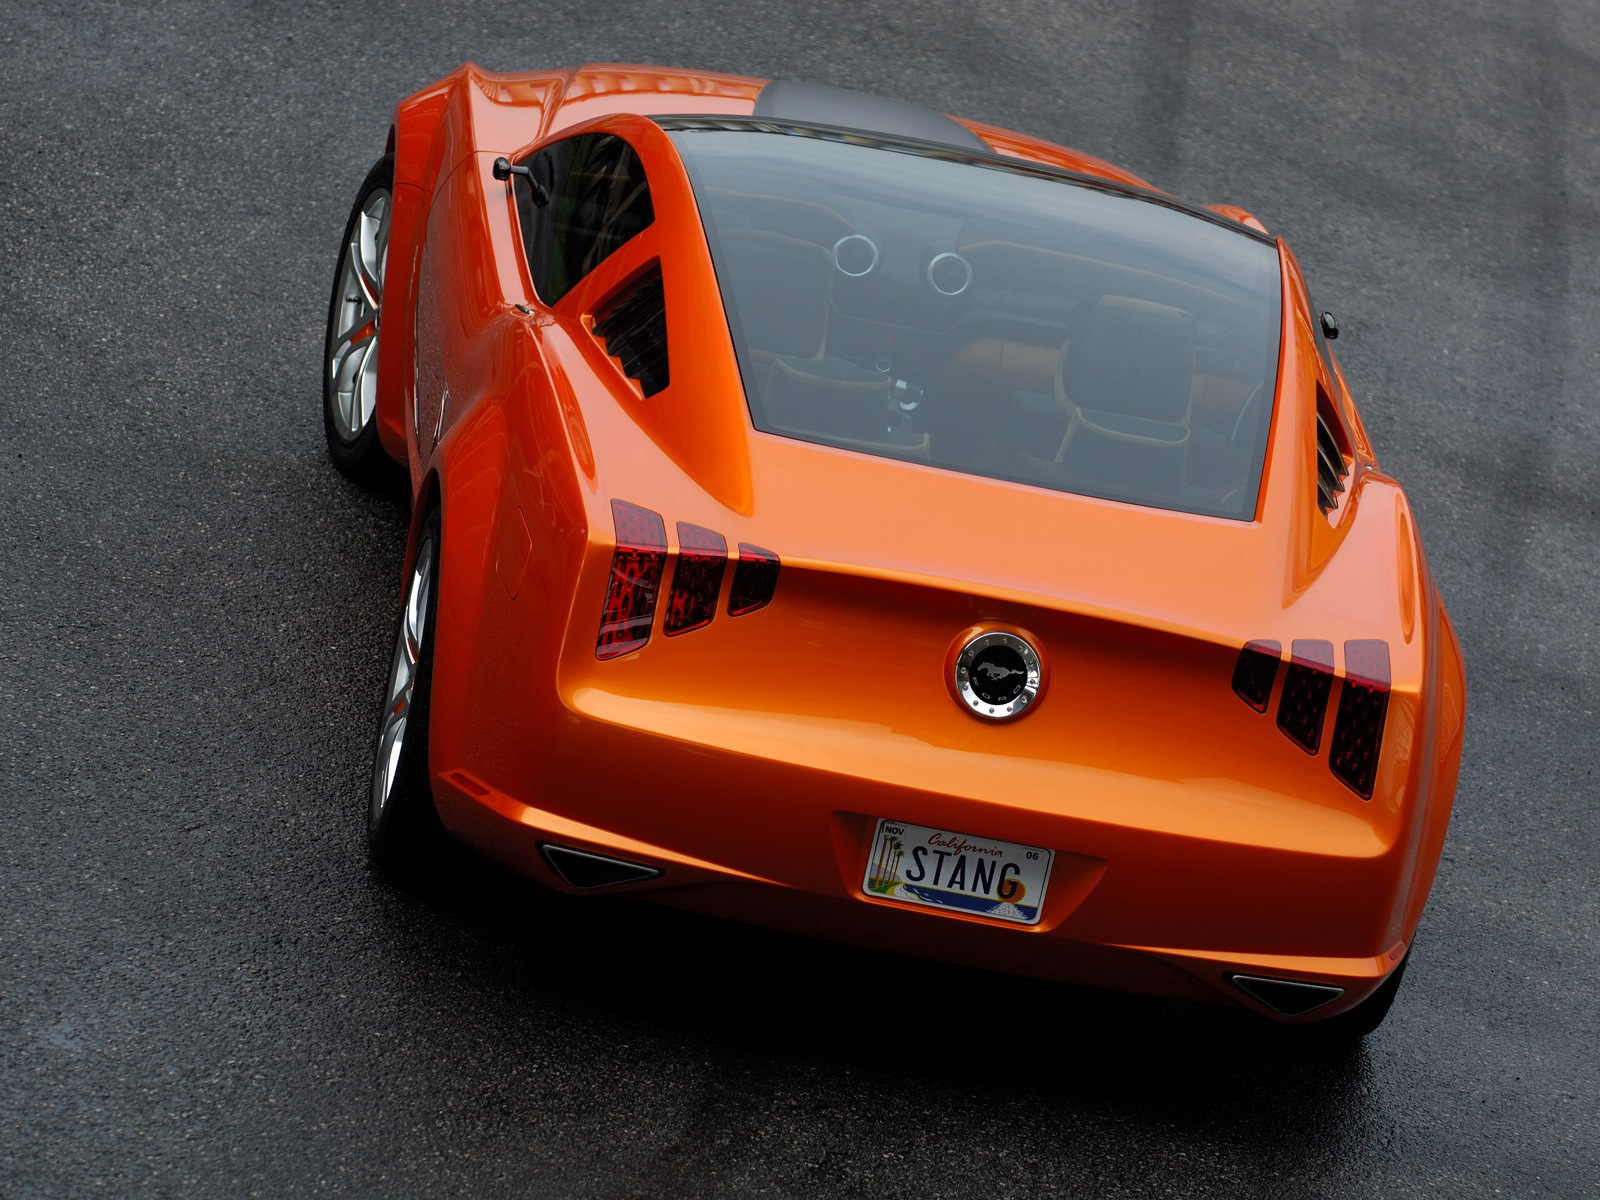 Ford Mustang Concept Car